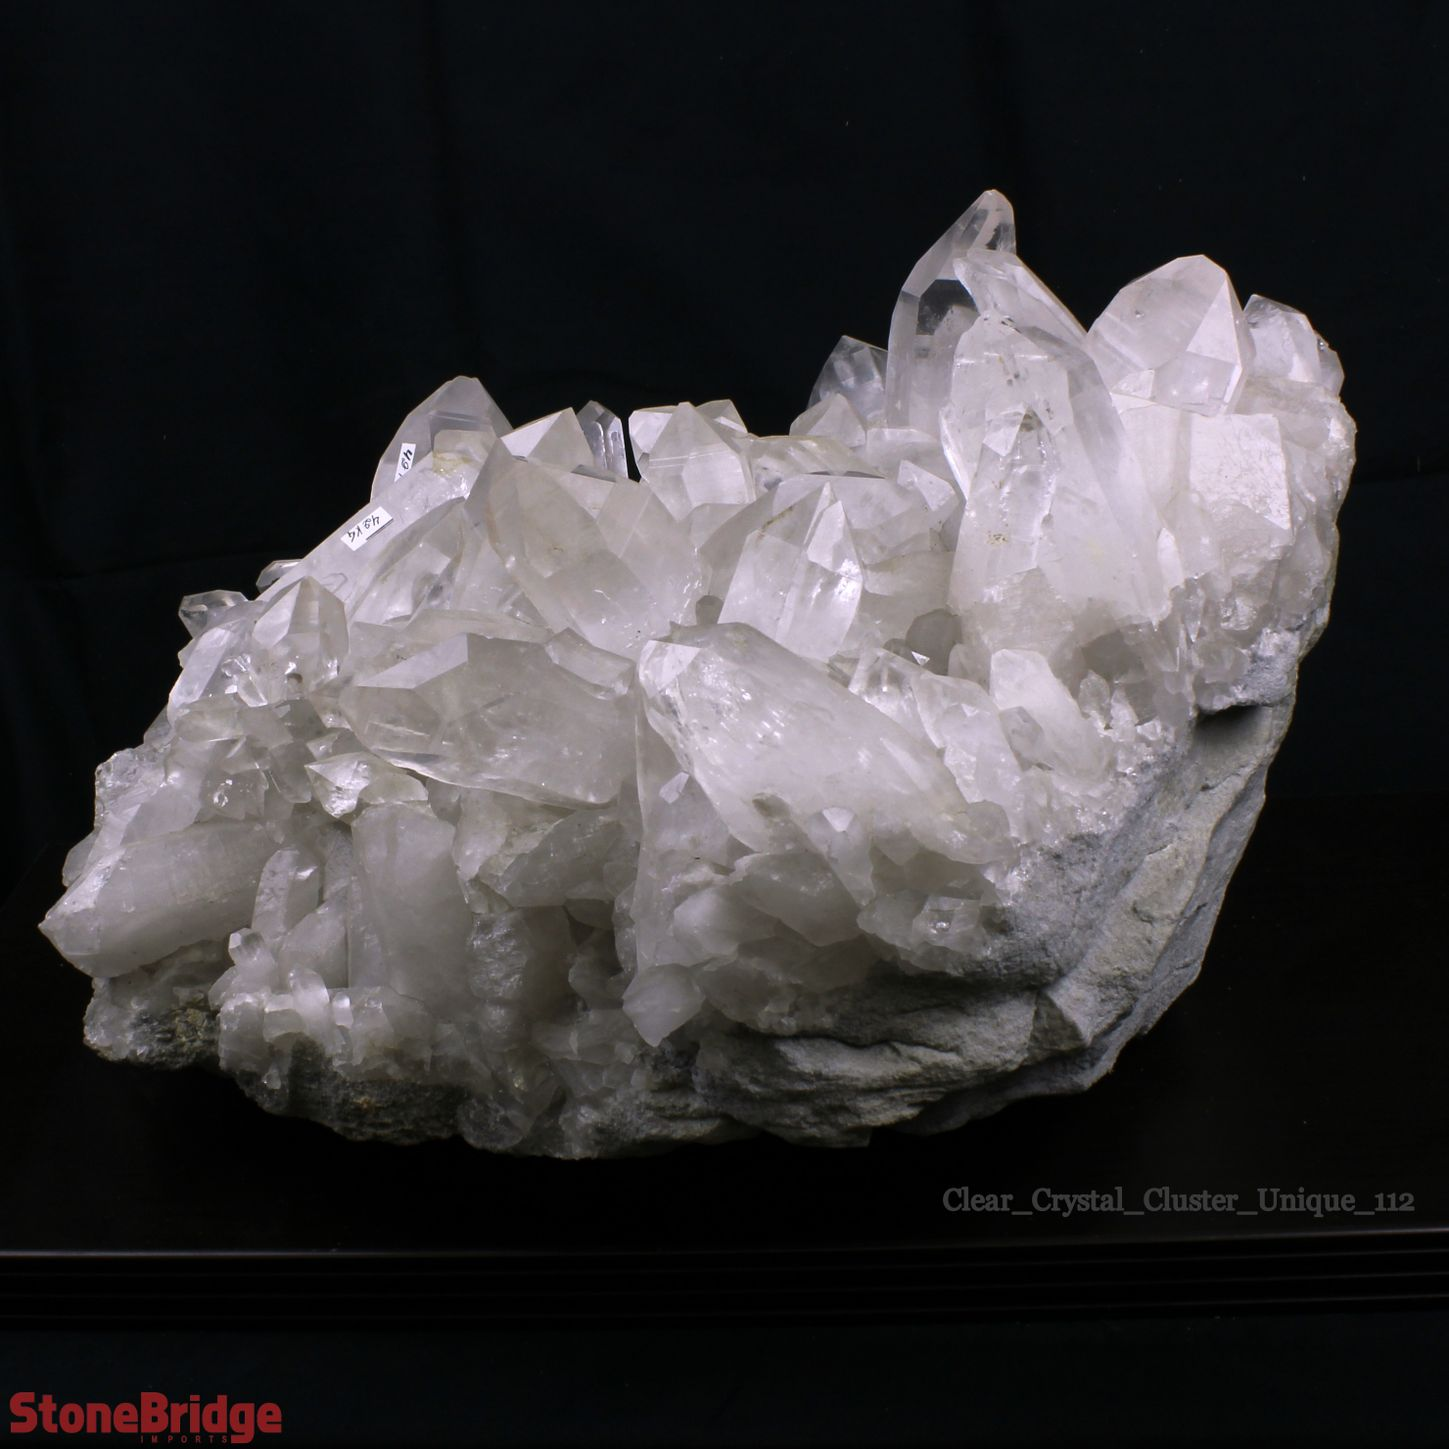 CLCRU112_Clear_Crystal_Cluster_Unique_1121.jpg